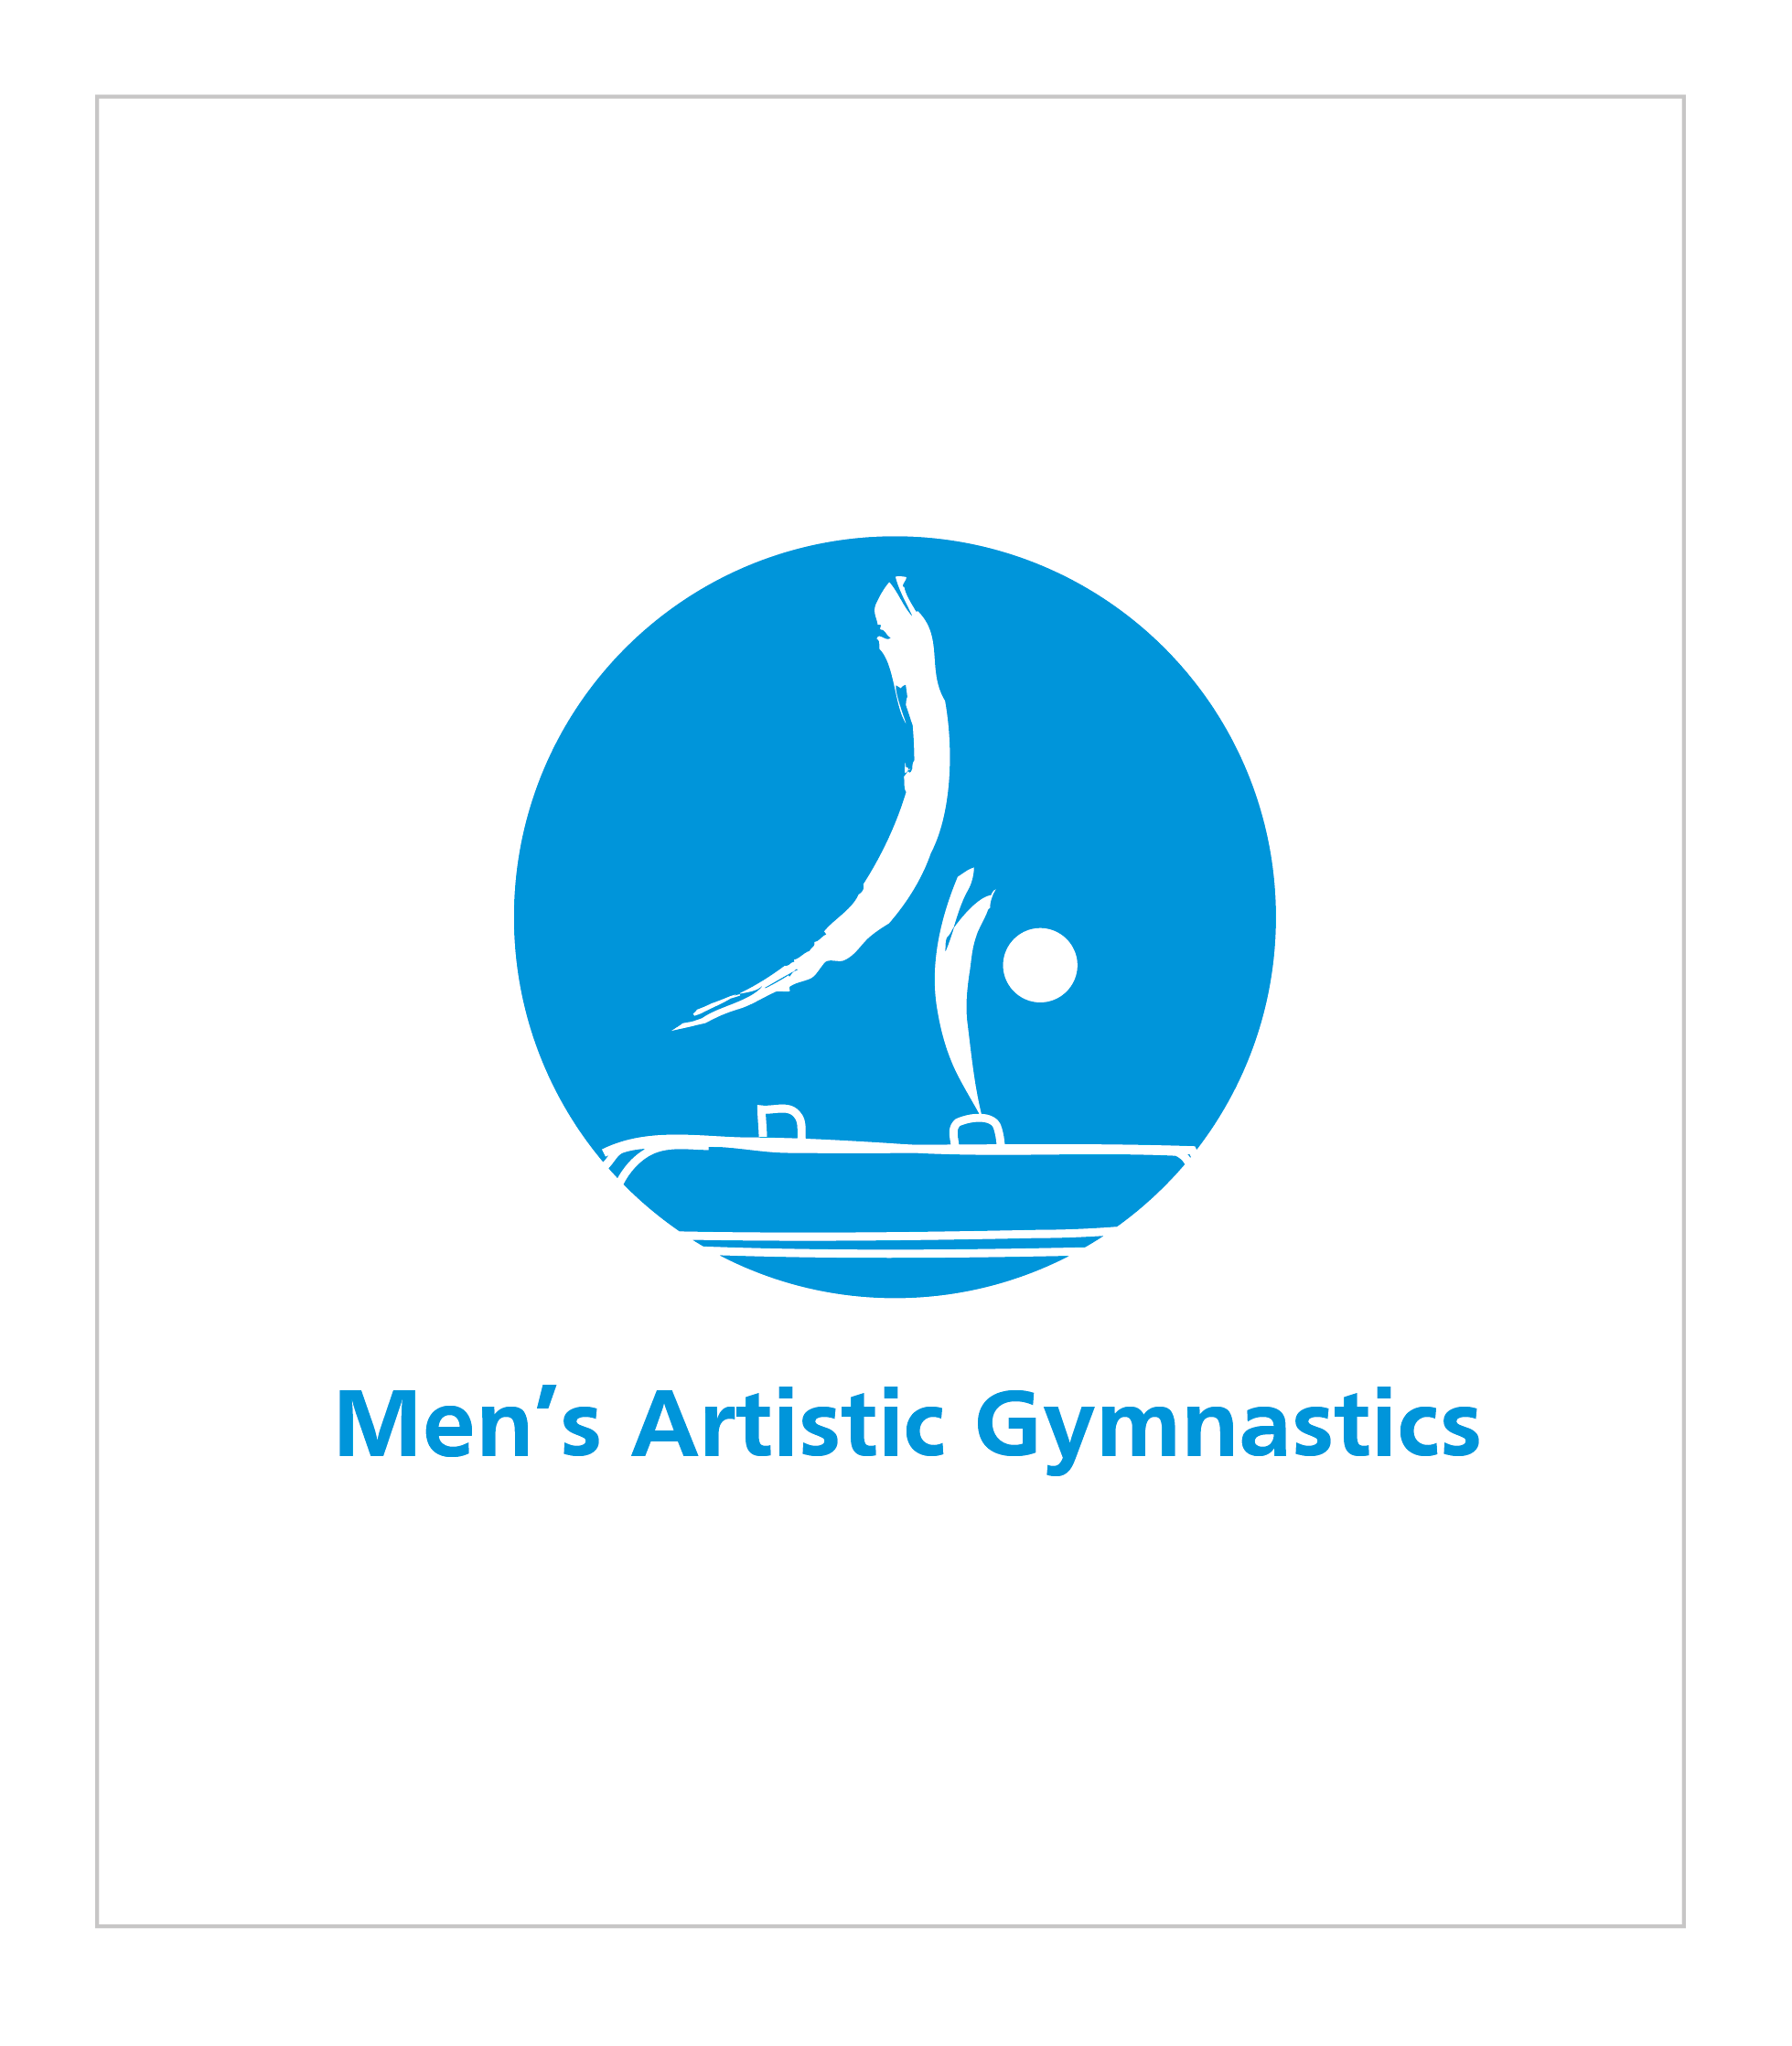 Men's Artistic Gymnastics